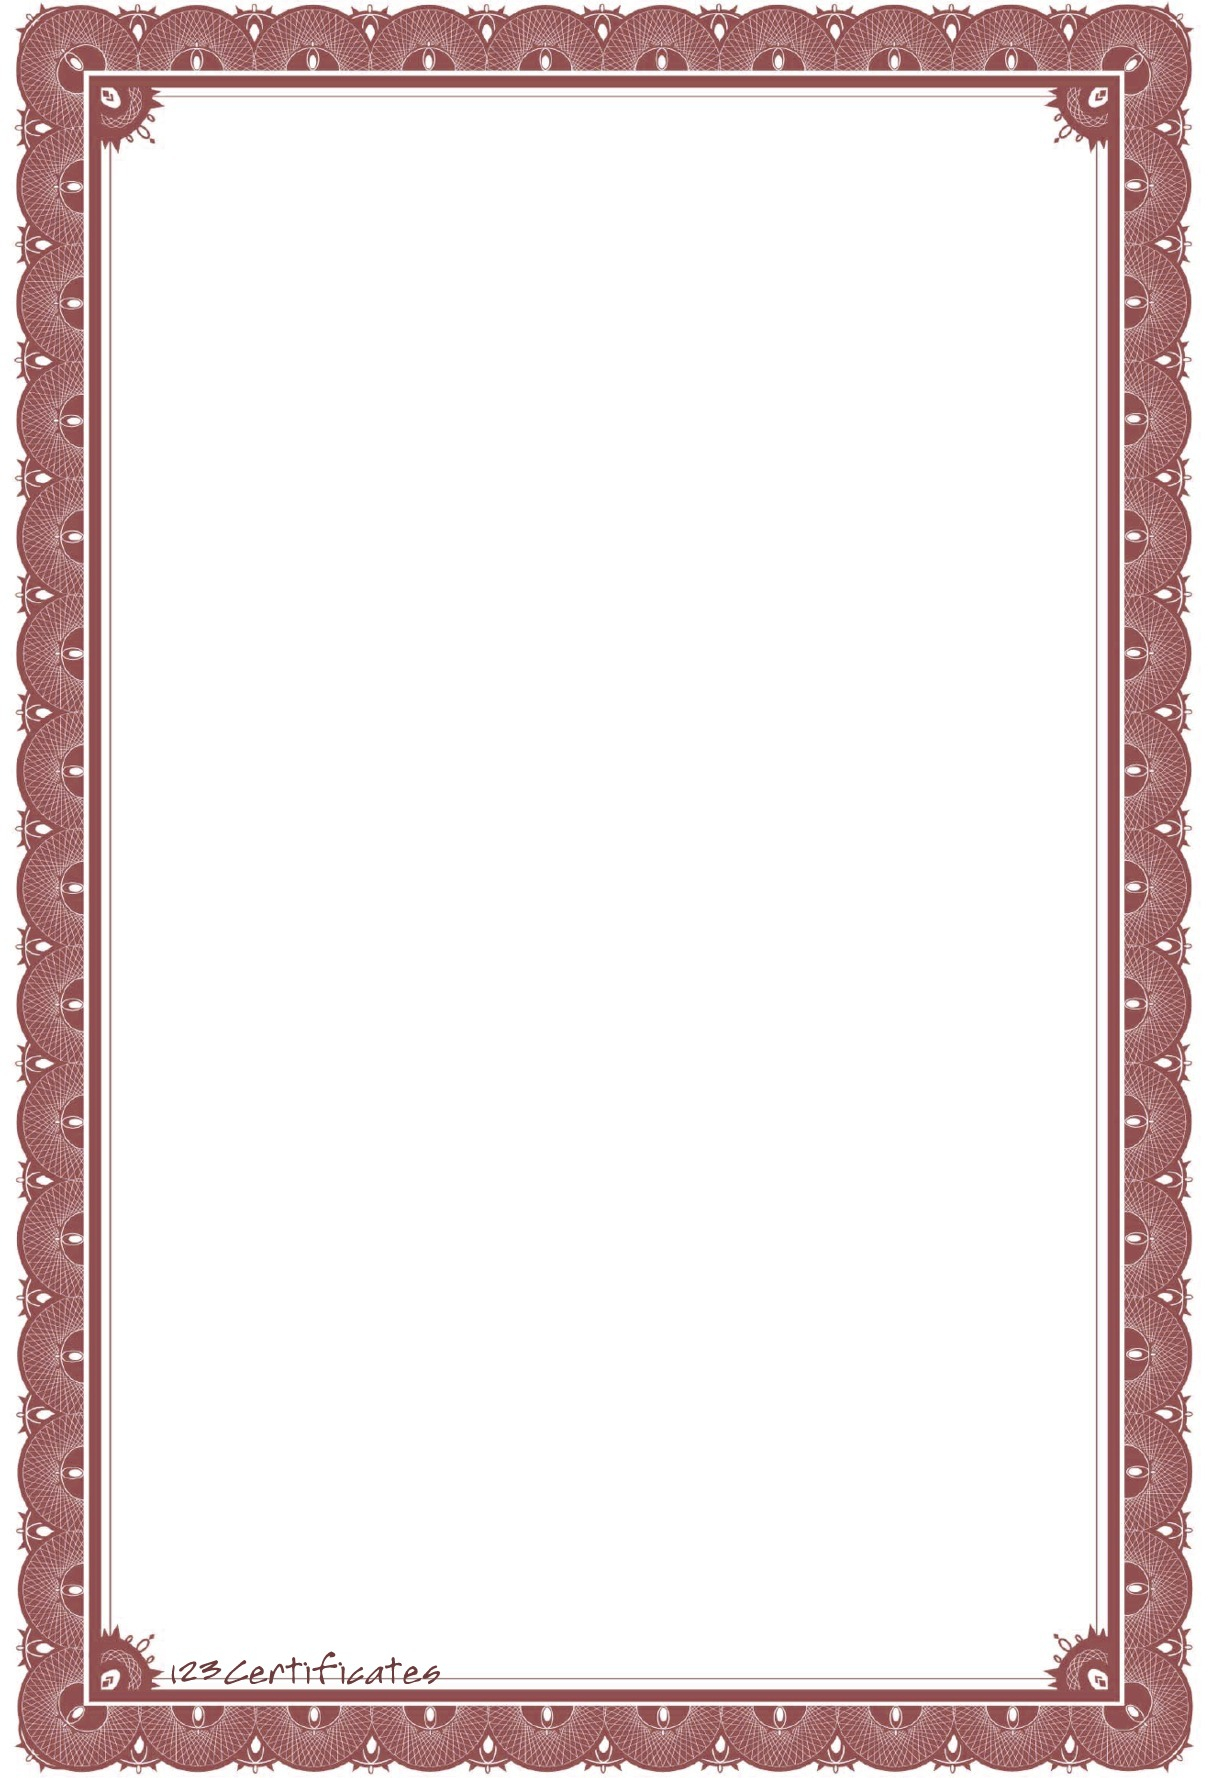 free certificate border artwork, certificate background templates